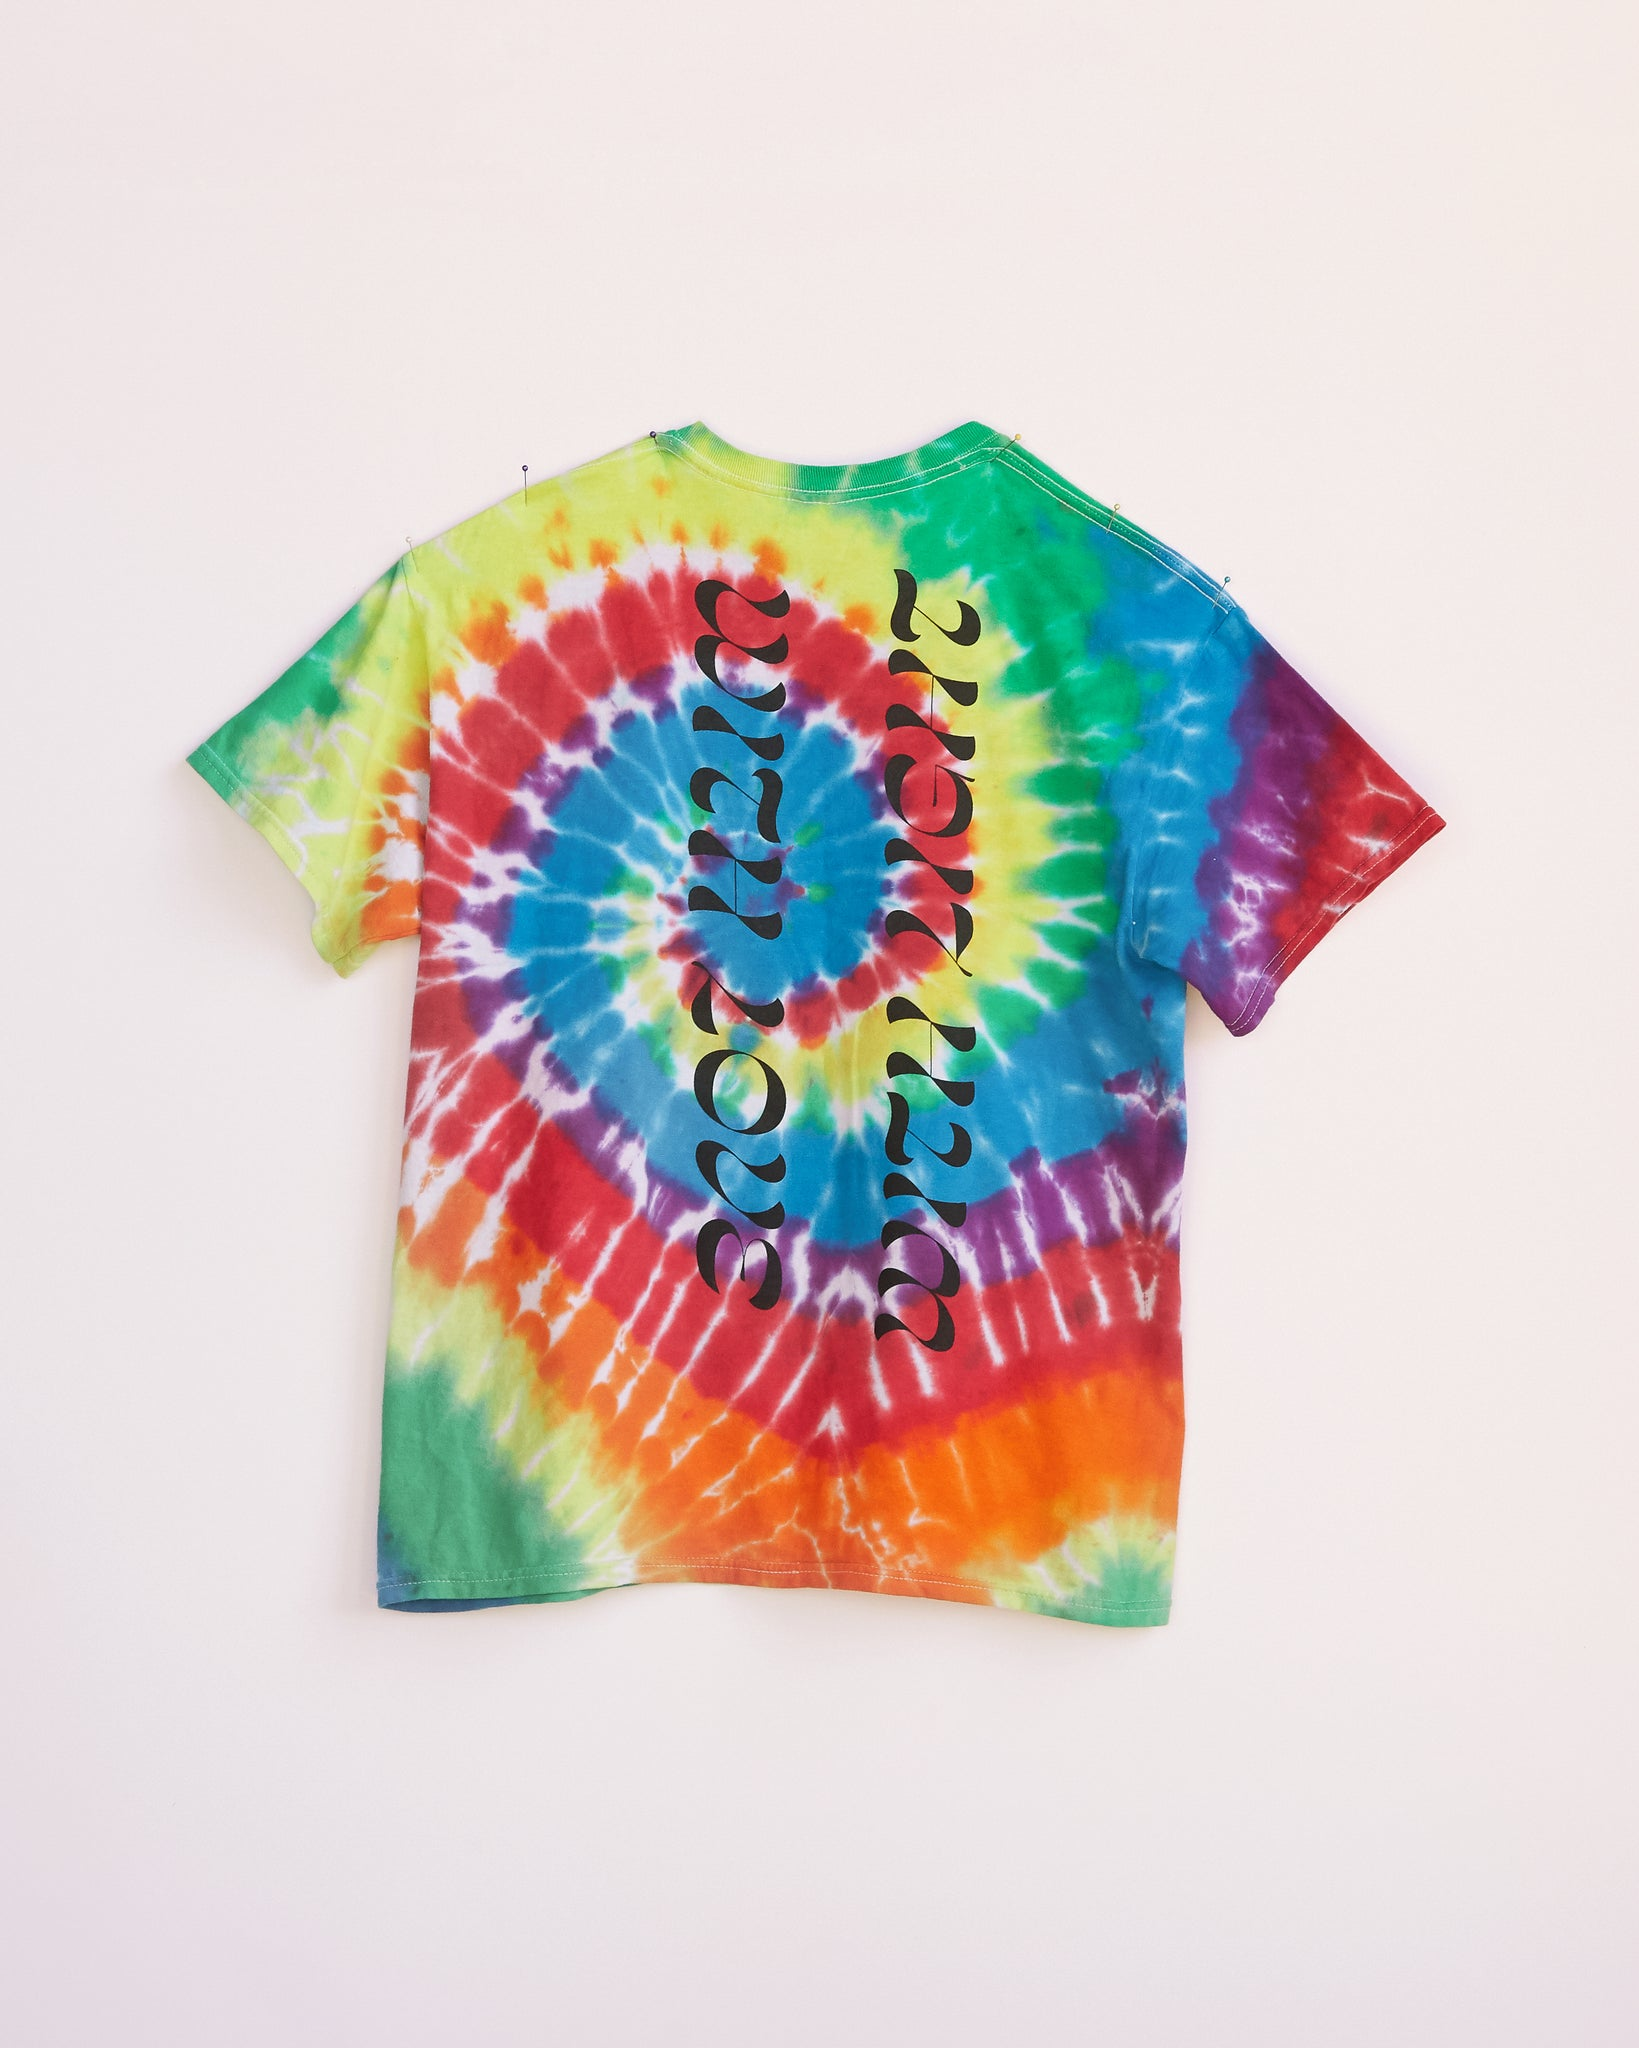 SMARTER THAN A HARE TIE DYE BLAST OVER SHIRT - S